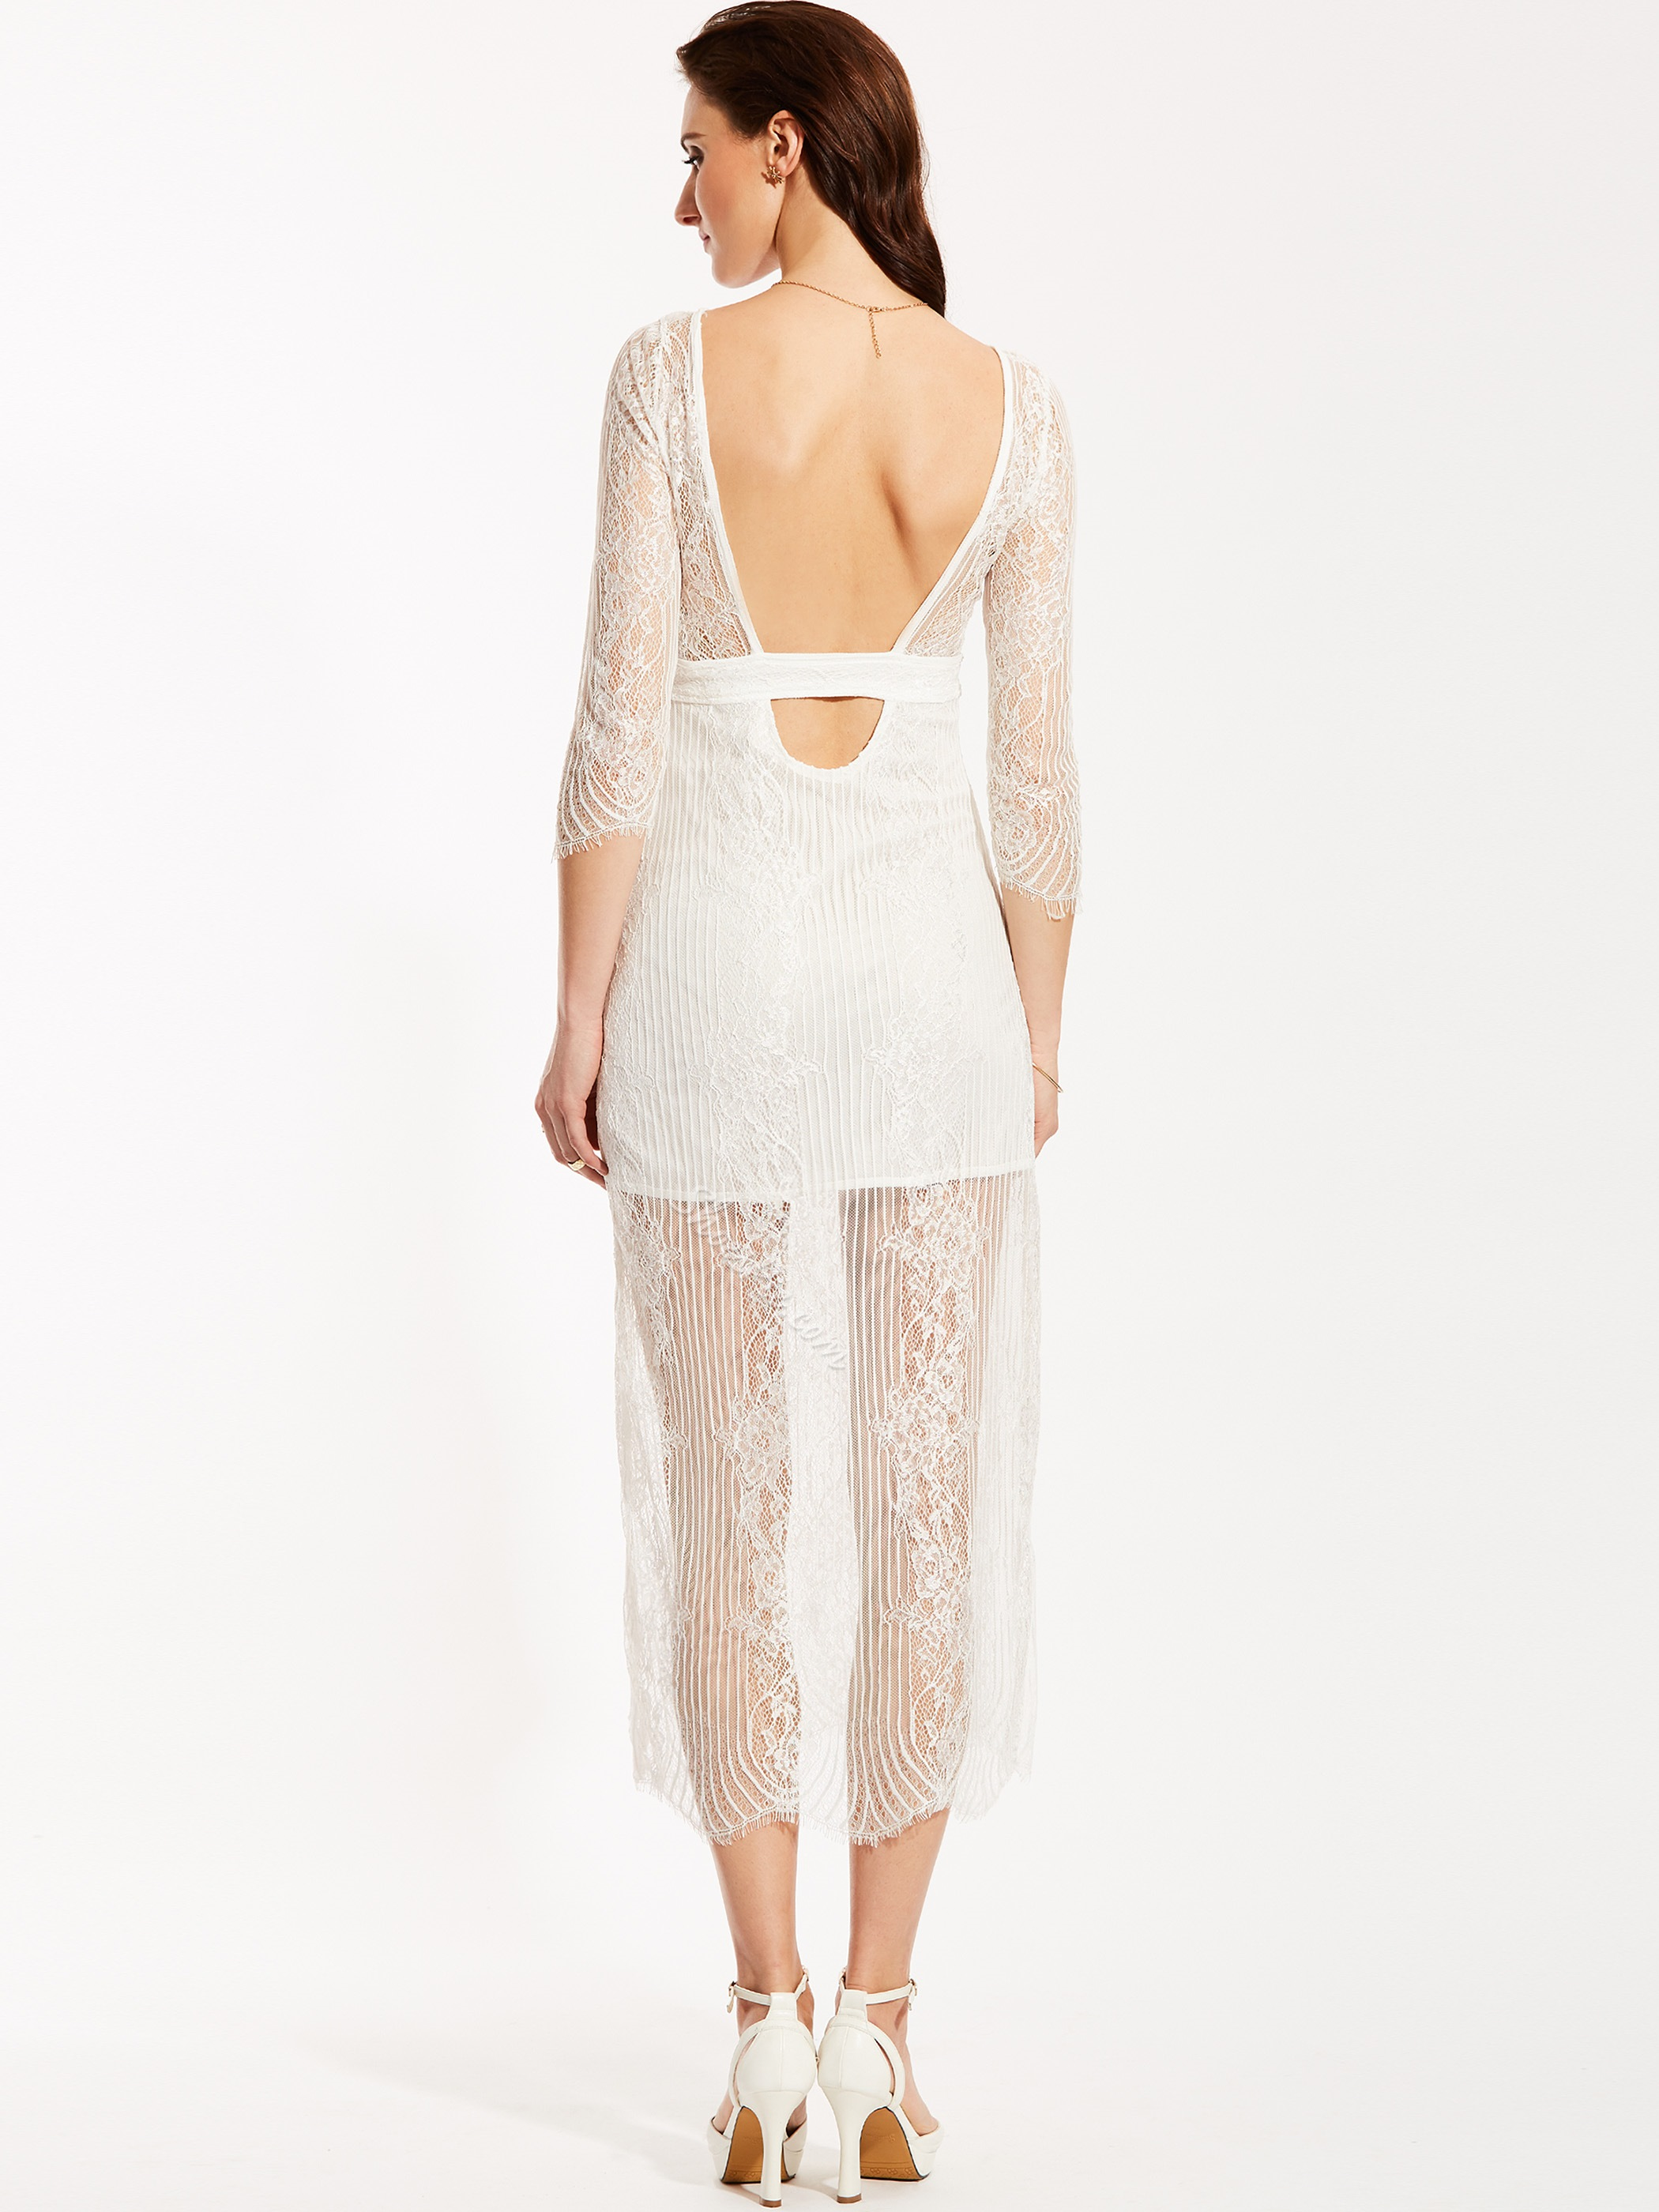 Round Neck See-Through Backless Lace Dress